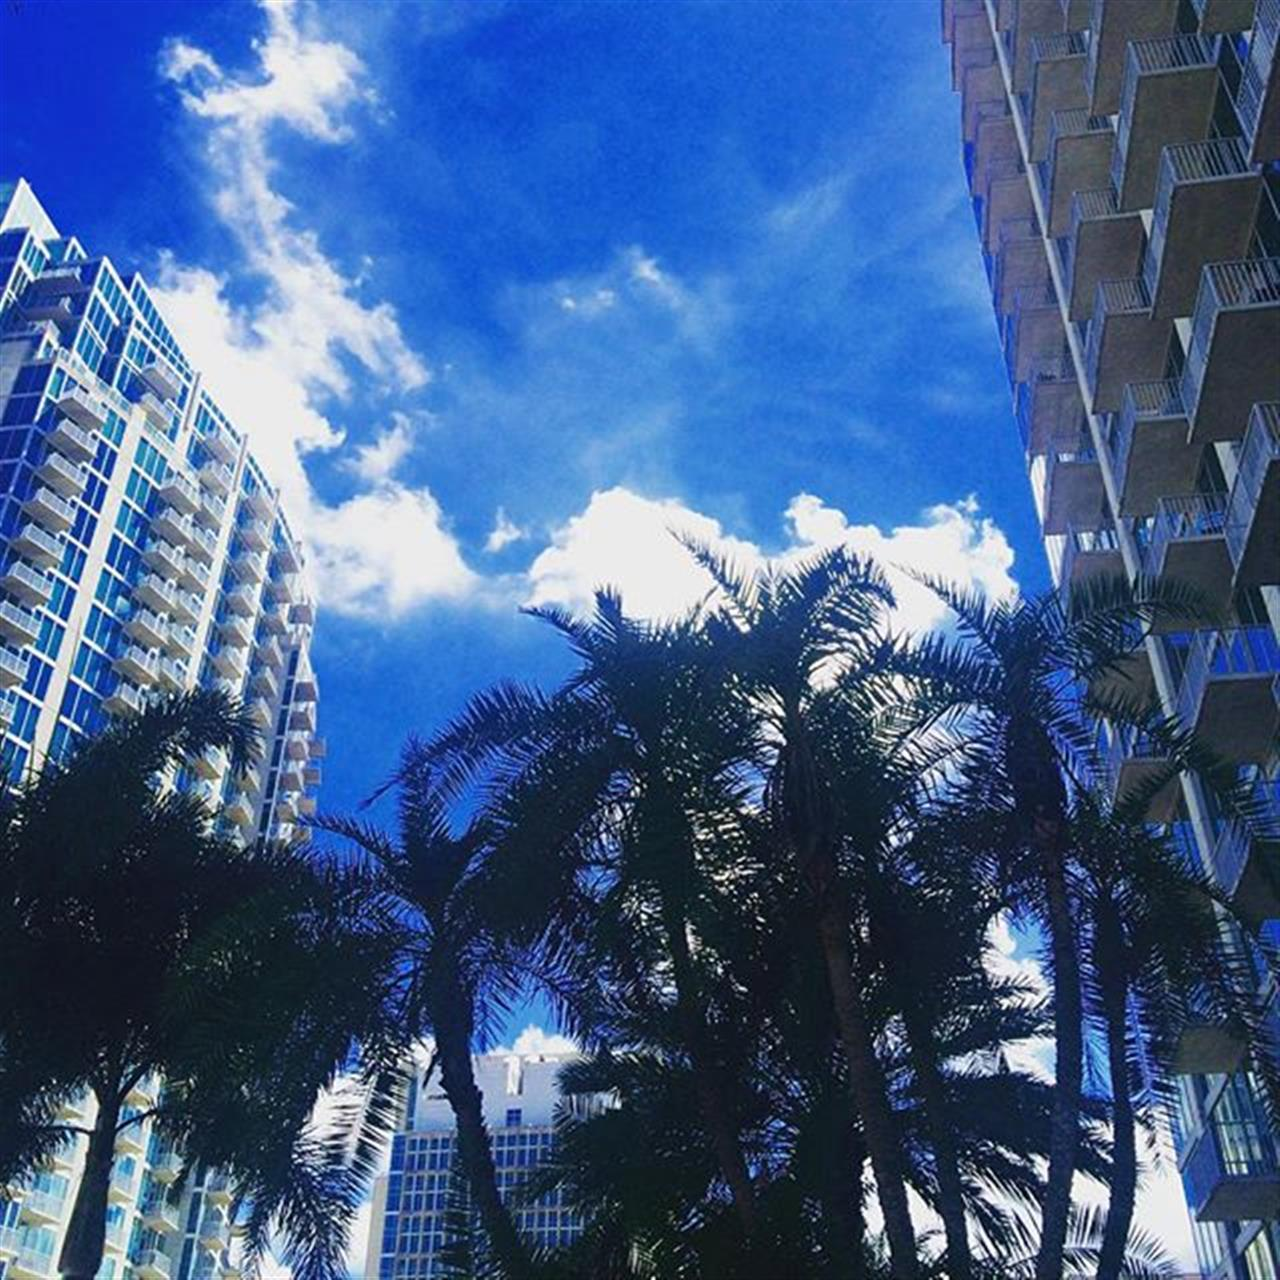 Another beautiful day in Downtown Tampa #skypoint #element #leadingrelocal #smithandassociates #downtowntampa